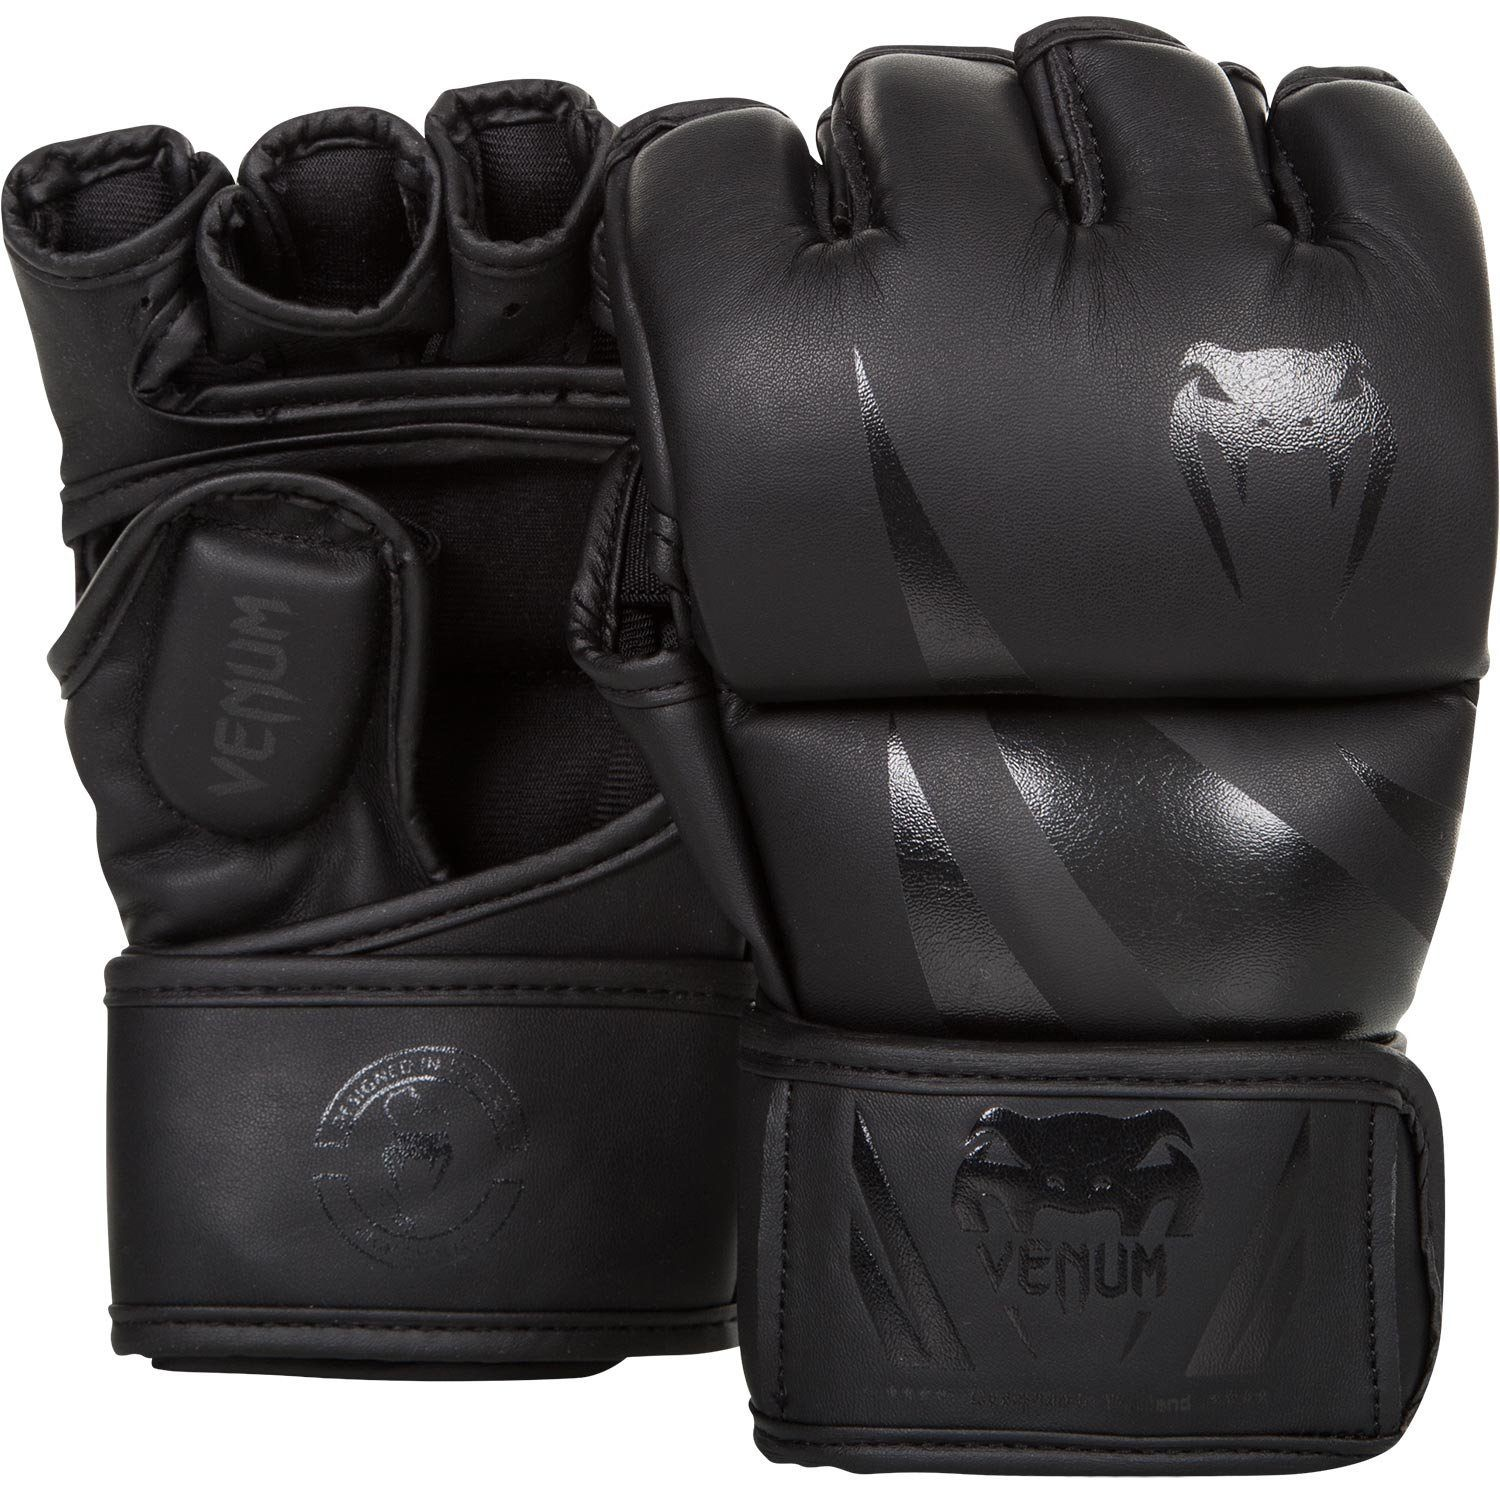 Best MMA Gloves - Venum